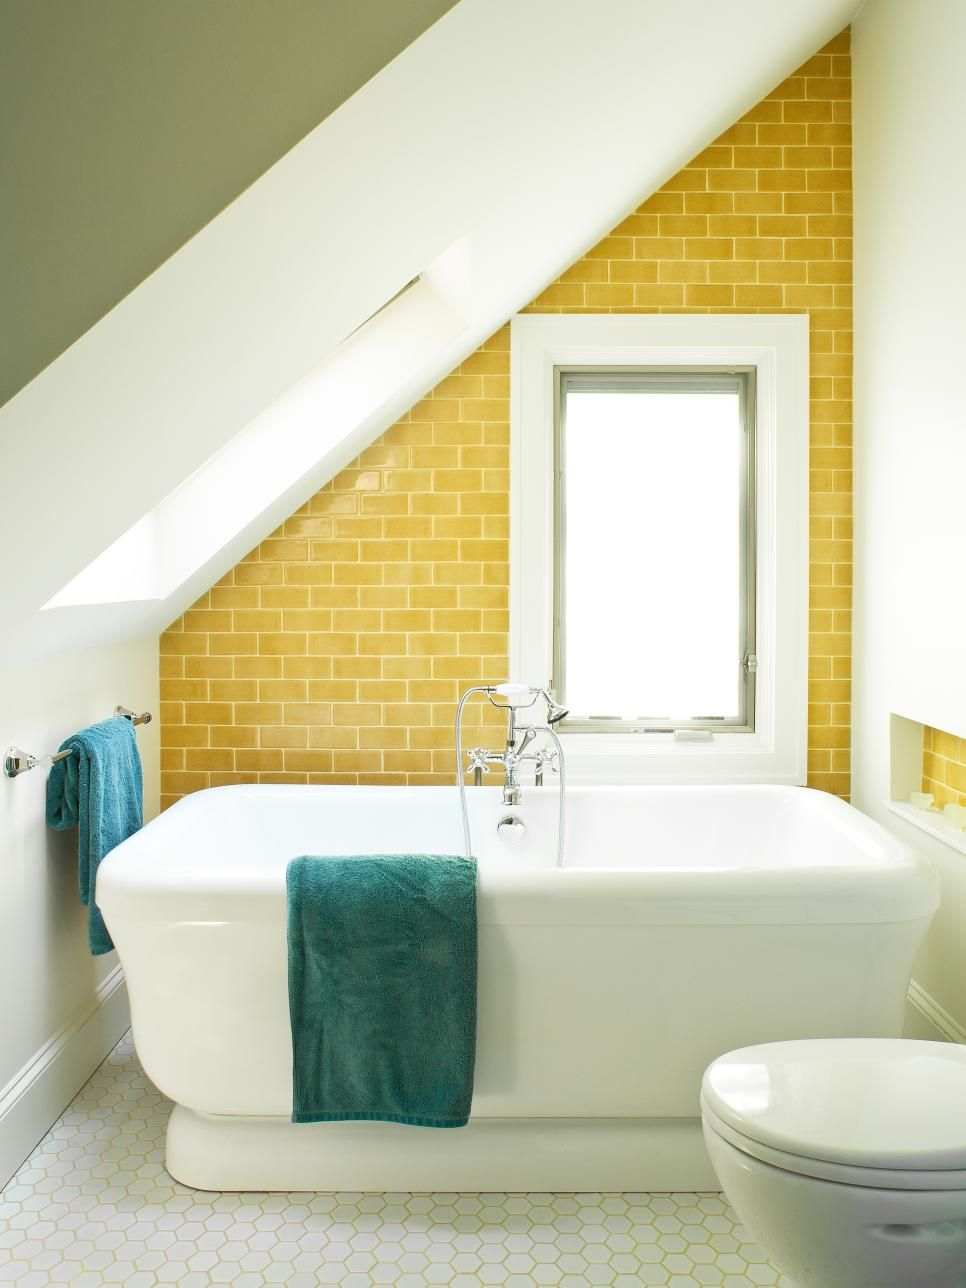 Bathroom Pictures: 99 Stylish Design Ideas You\'ll Love | Compact ...